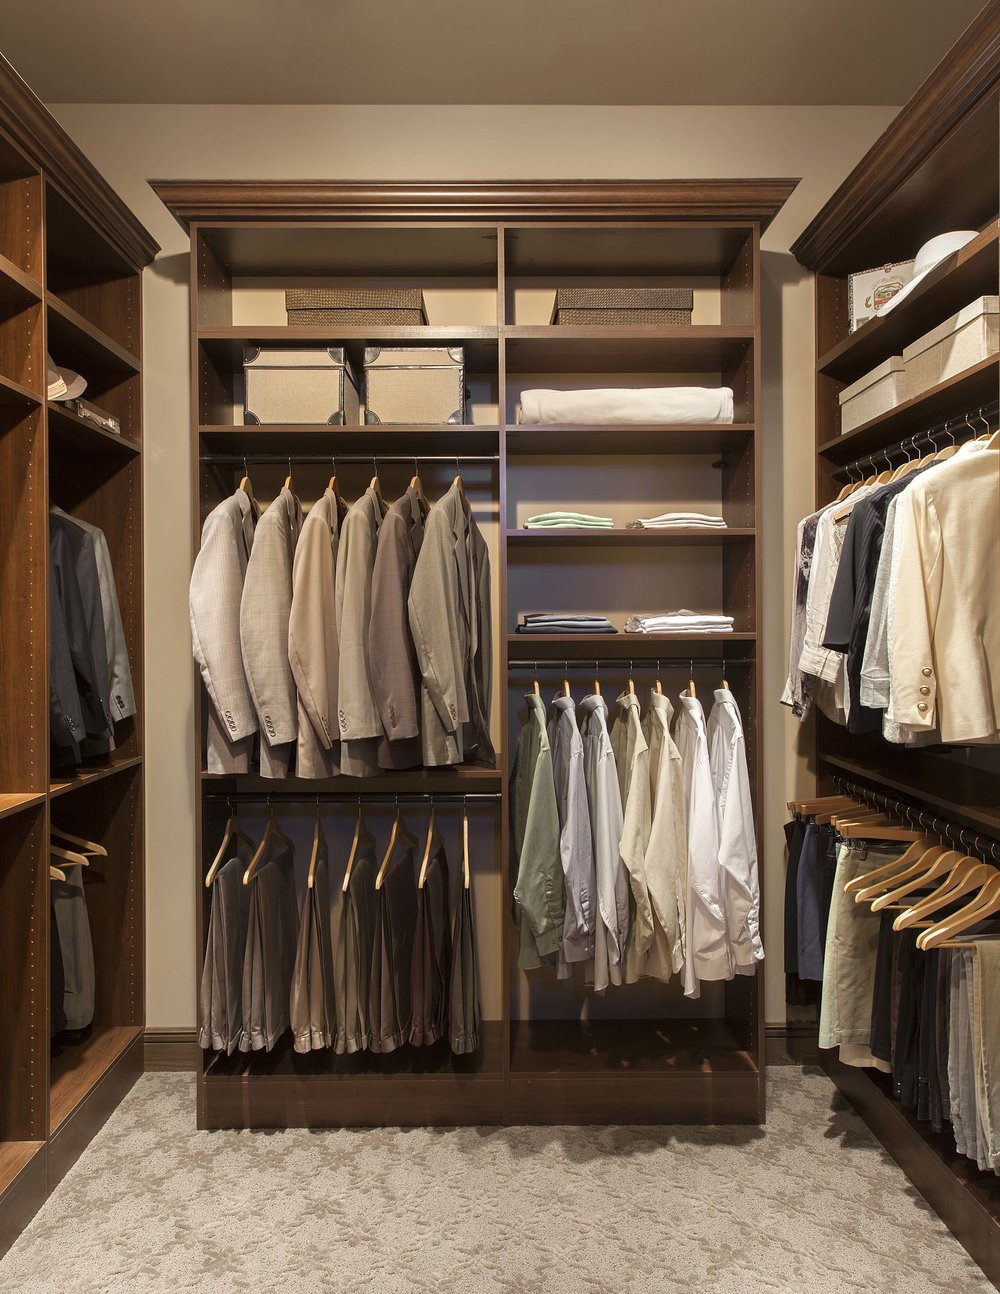 Crown molding is a standout detail in this handsome custom closet.  Call Closets of Tulsa  for a FREE consultation and 3-D closet design:  918.609.0214